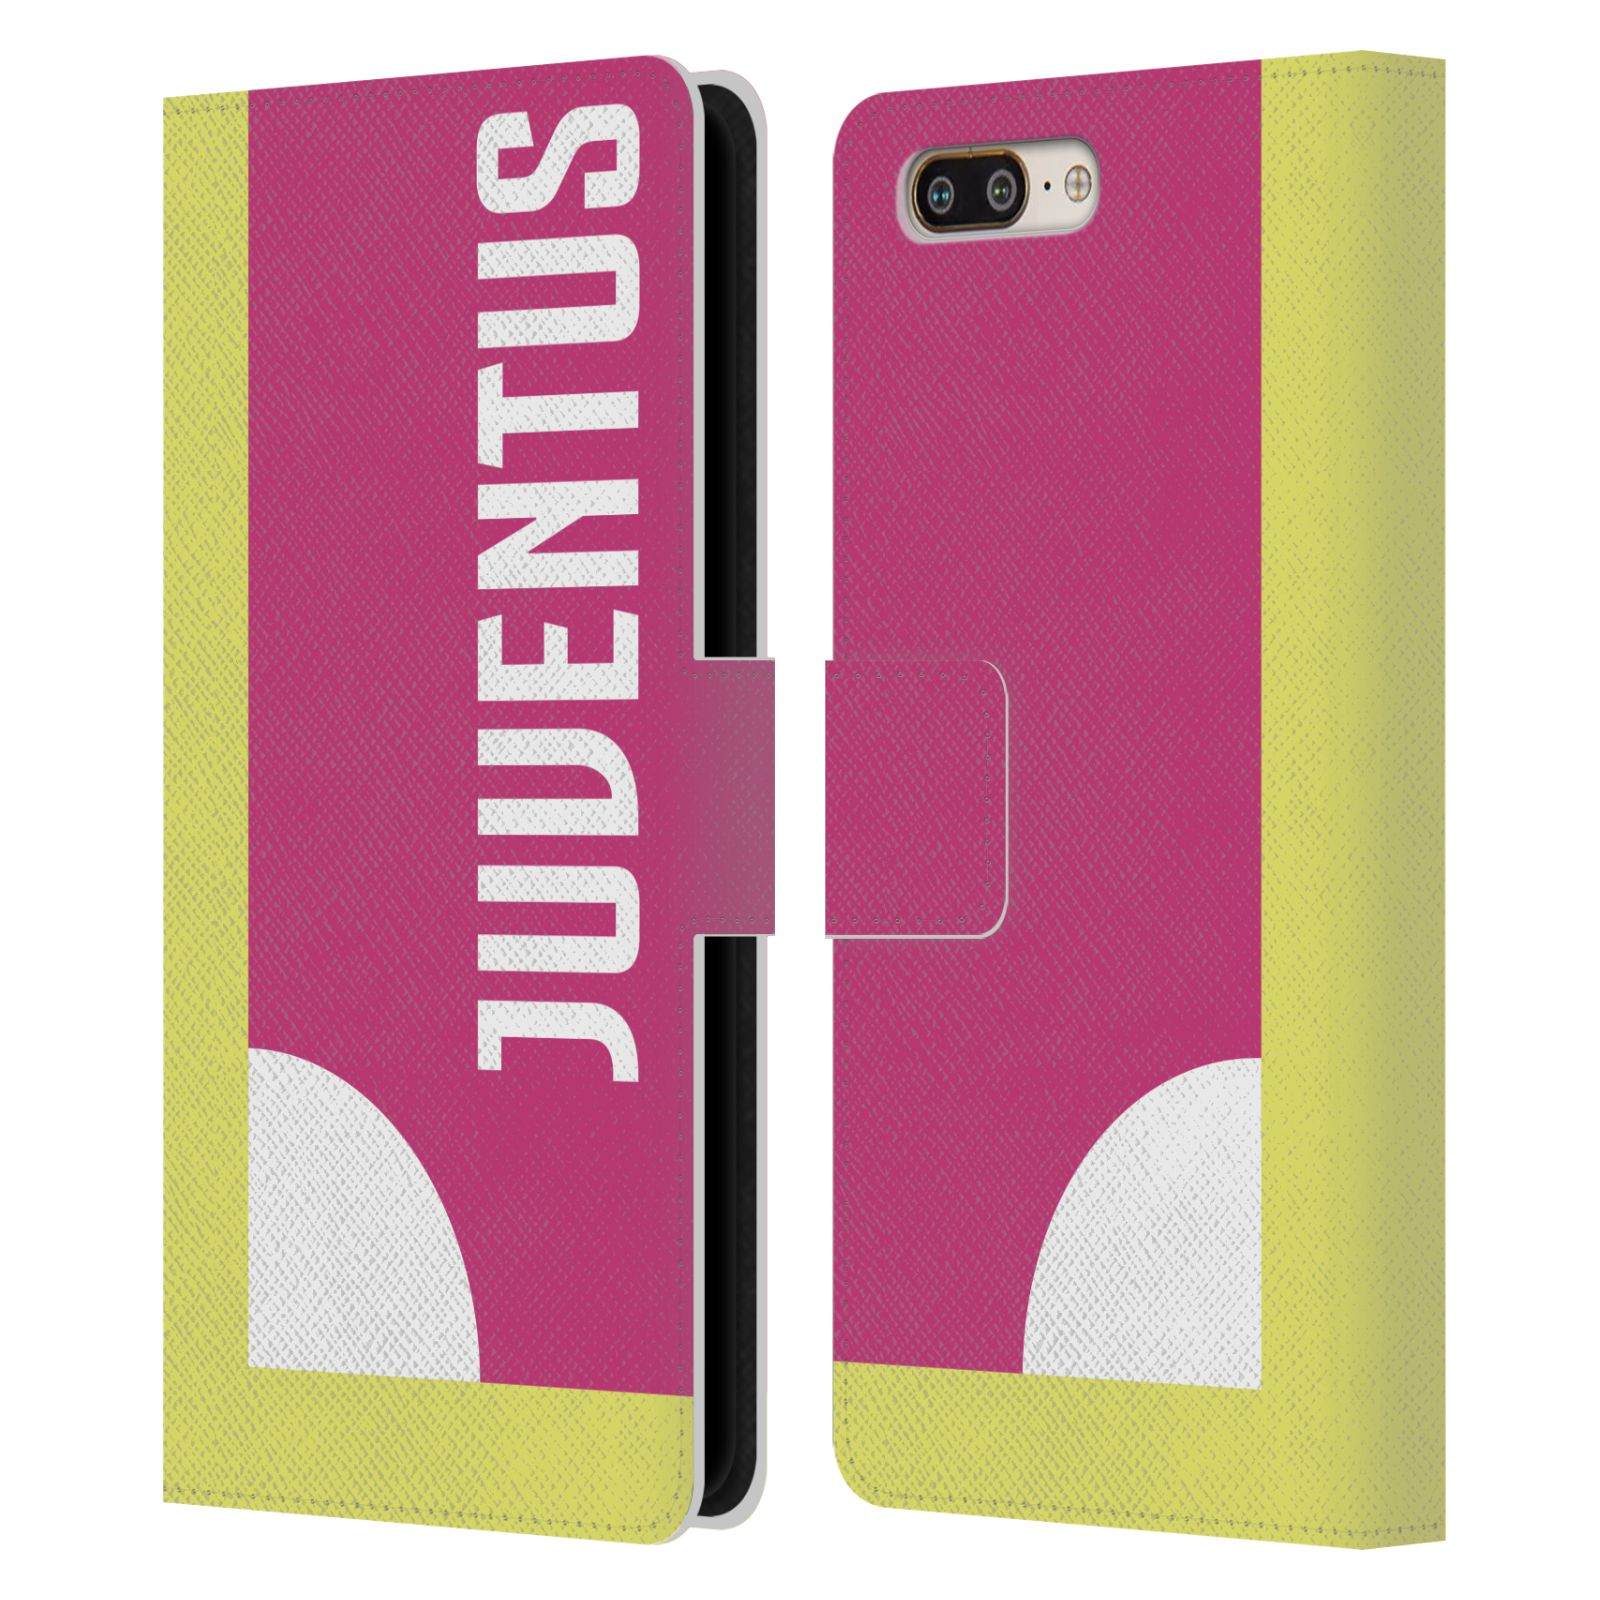 JUVENTUS-FC-2018-19-COLOUR-BLOCKING-LEATHER-BOOK-CASE-FOR-BLACKBERRY-ONEPLUS